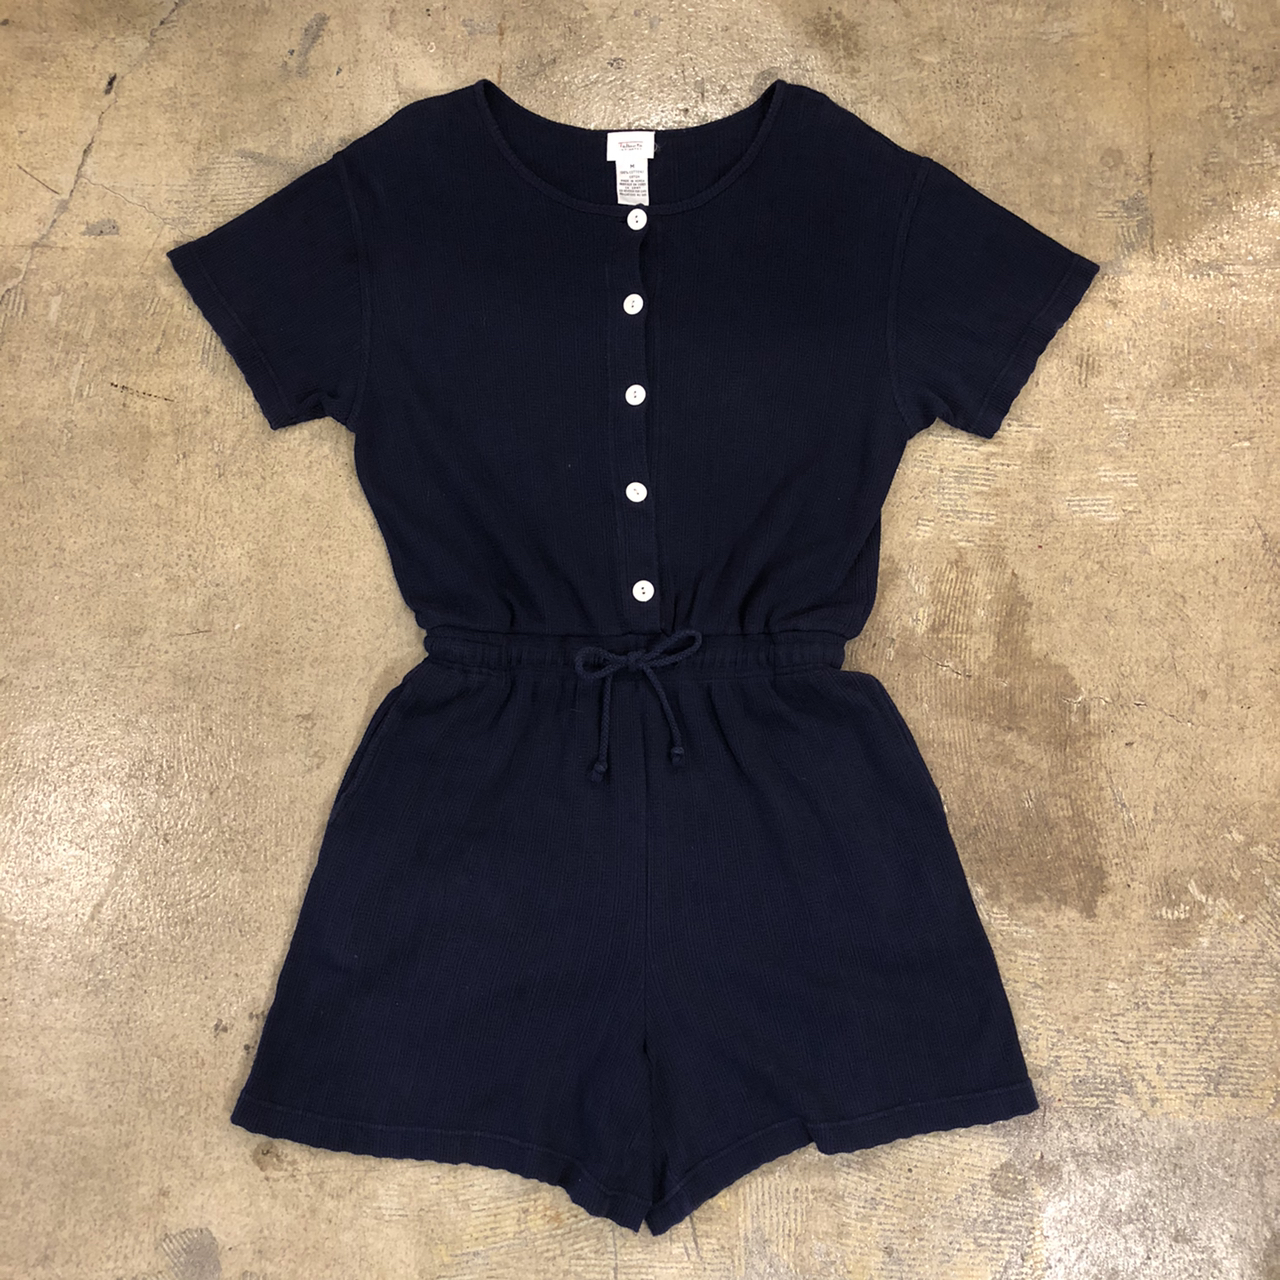 Talbots Short Rompers ¥6,400+tax